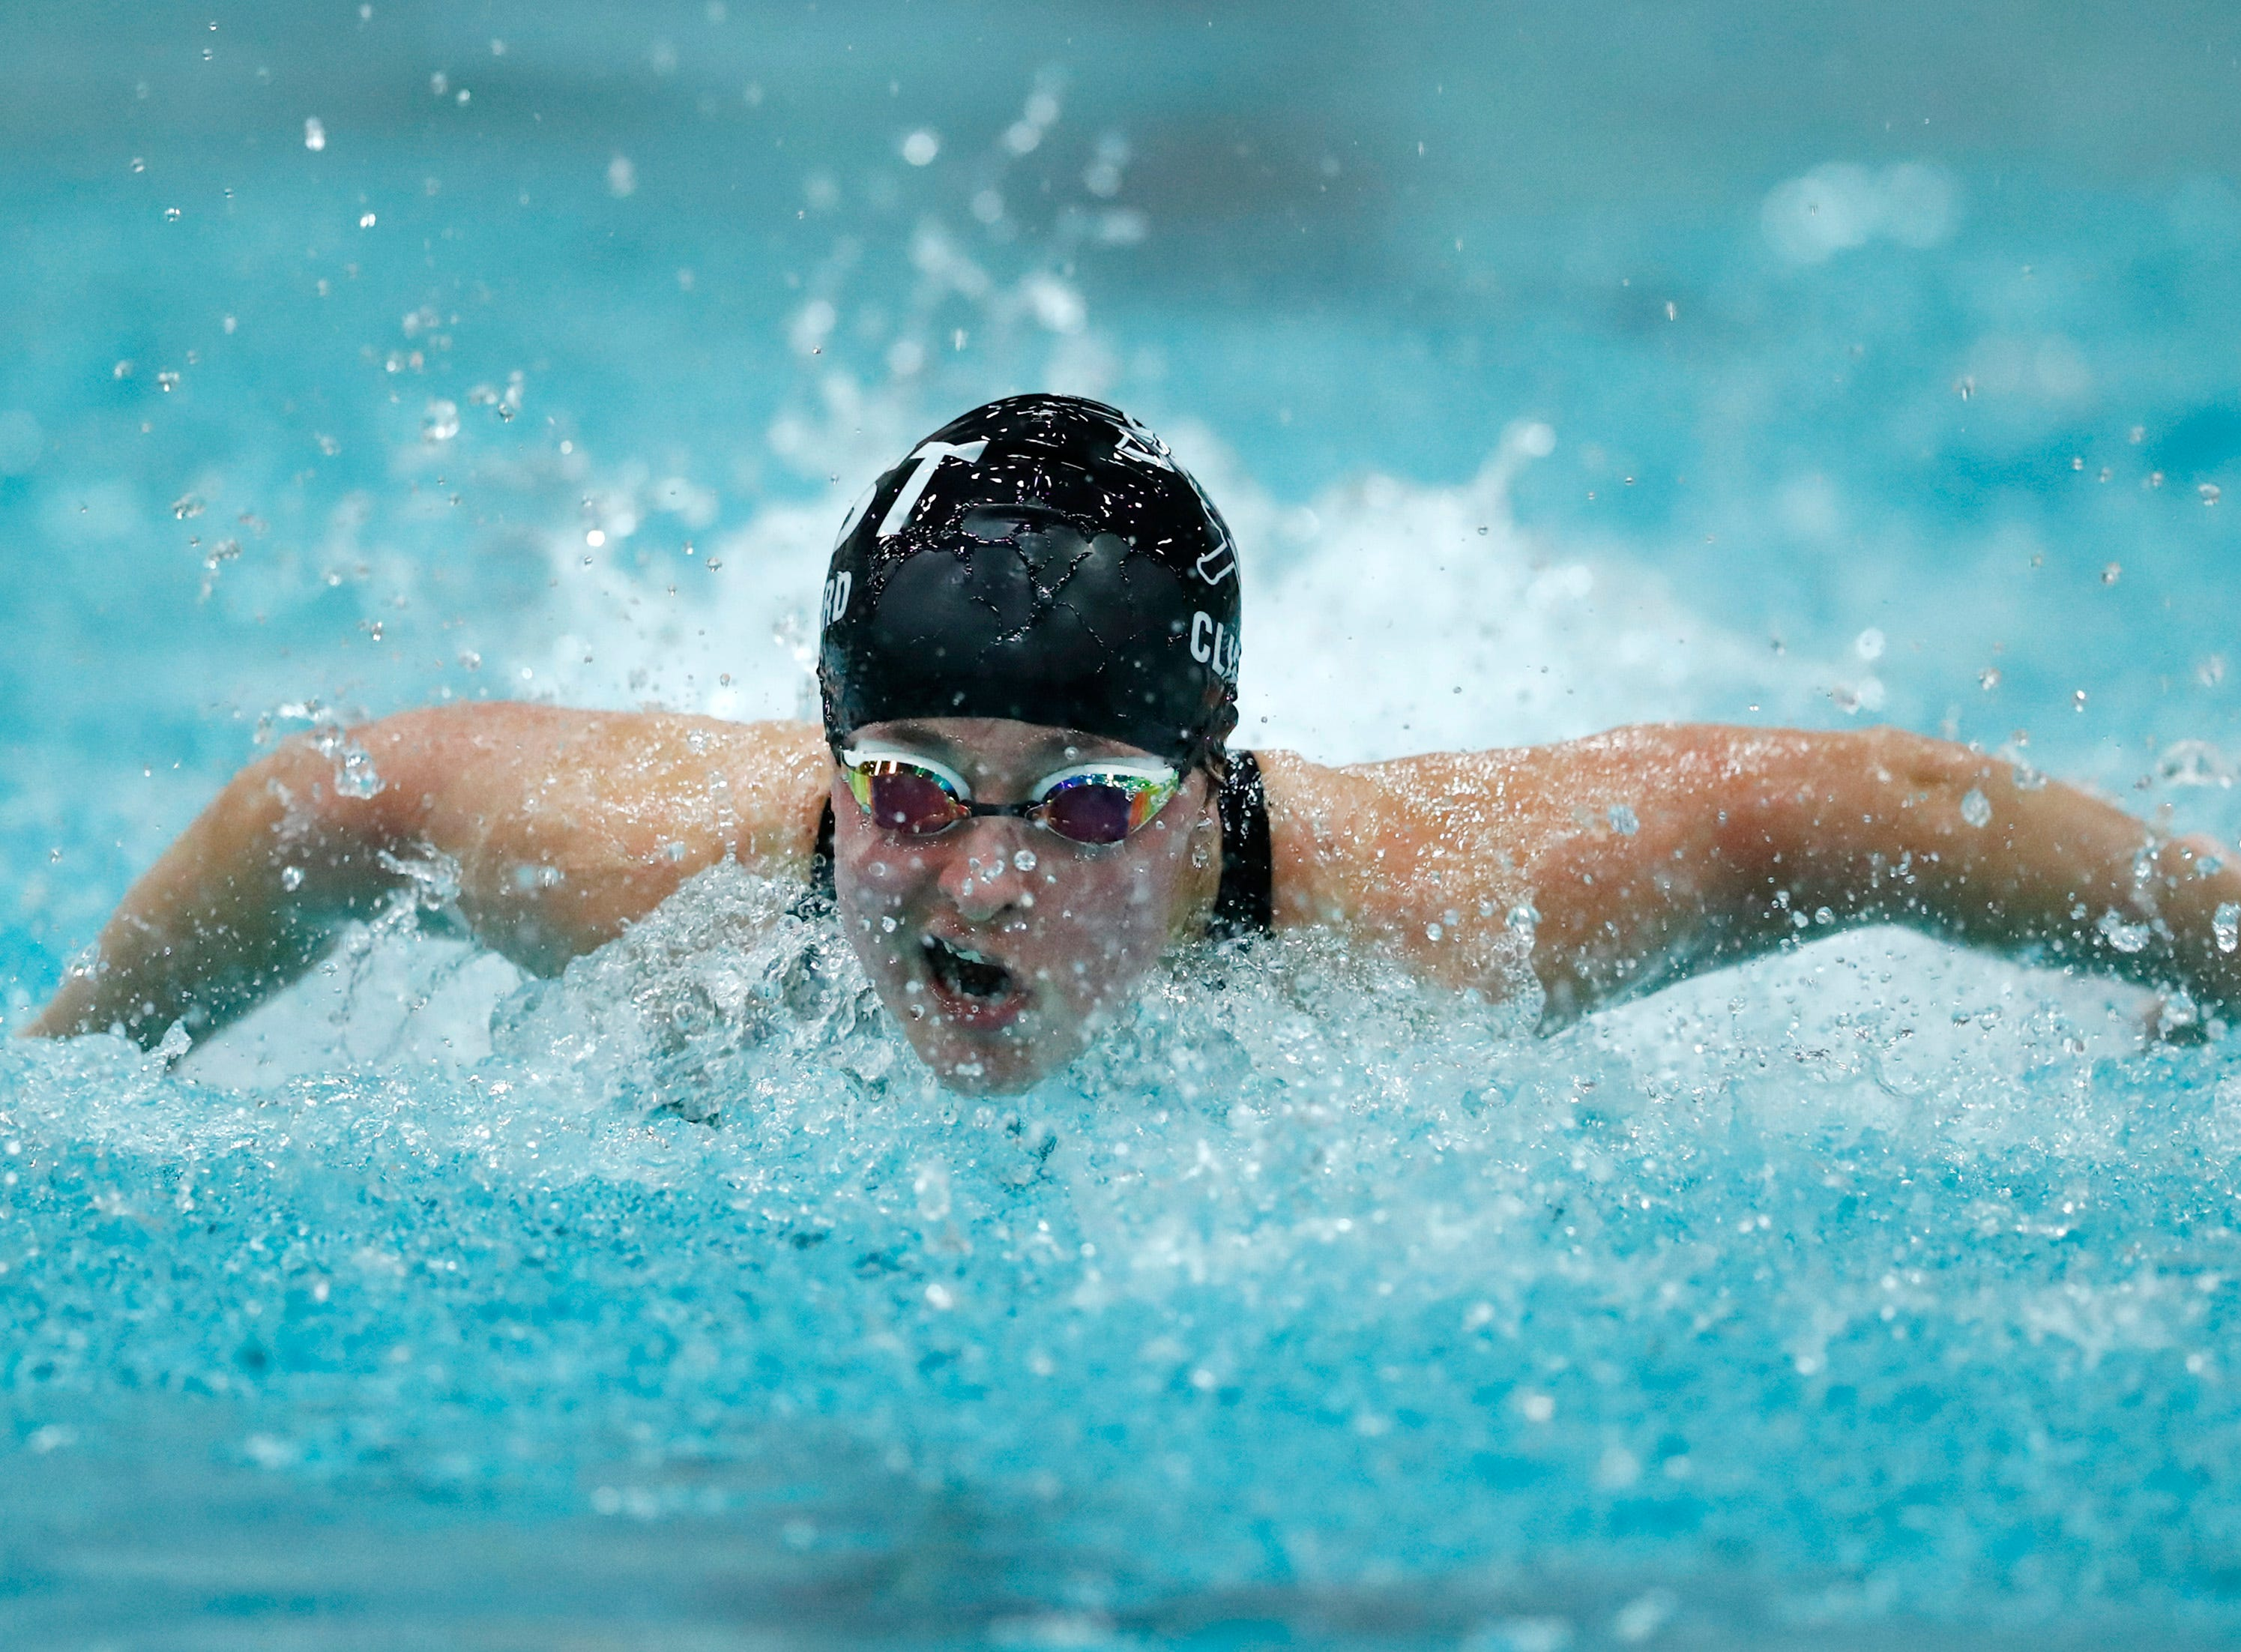 Wausau East's Emma Clifford races in the 100 yard butterfly during the WIAA Division 2 State Swimming and Diving meet Friday, Nov. 9, 2018, at the UW Natatorium in Madison, Wis.